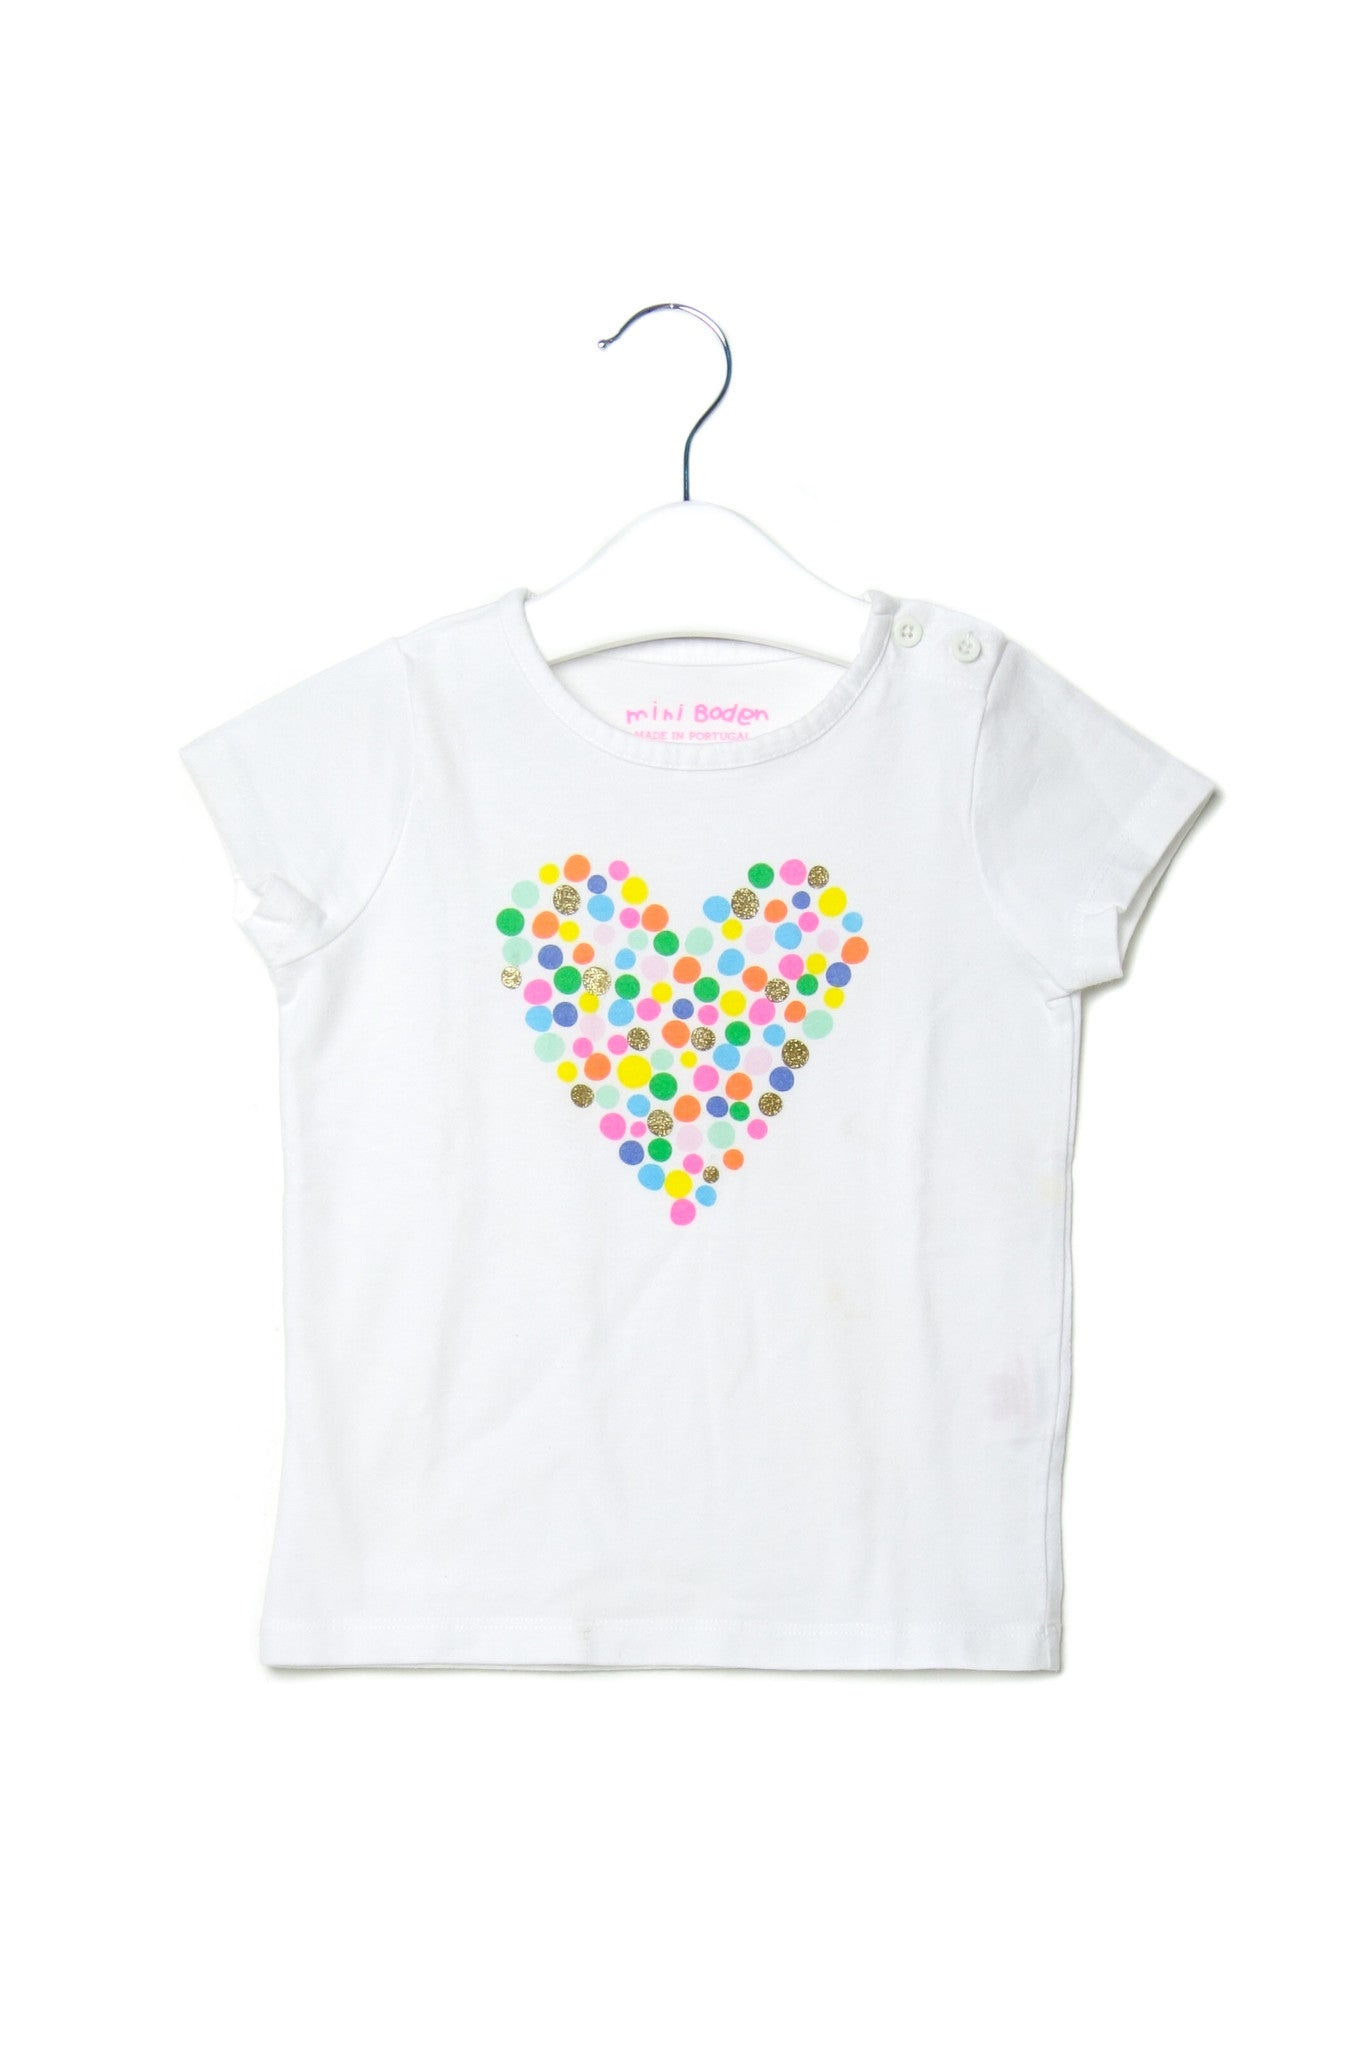 10002019 Boden Kids~T-Shirt 2-3T at Retykle